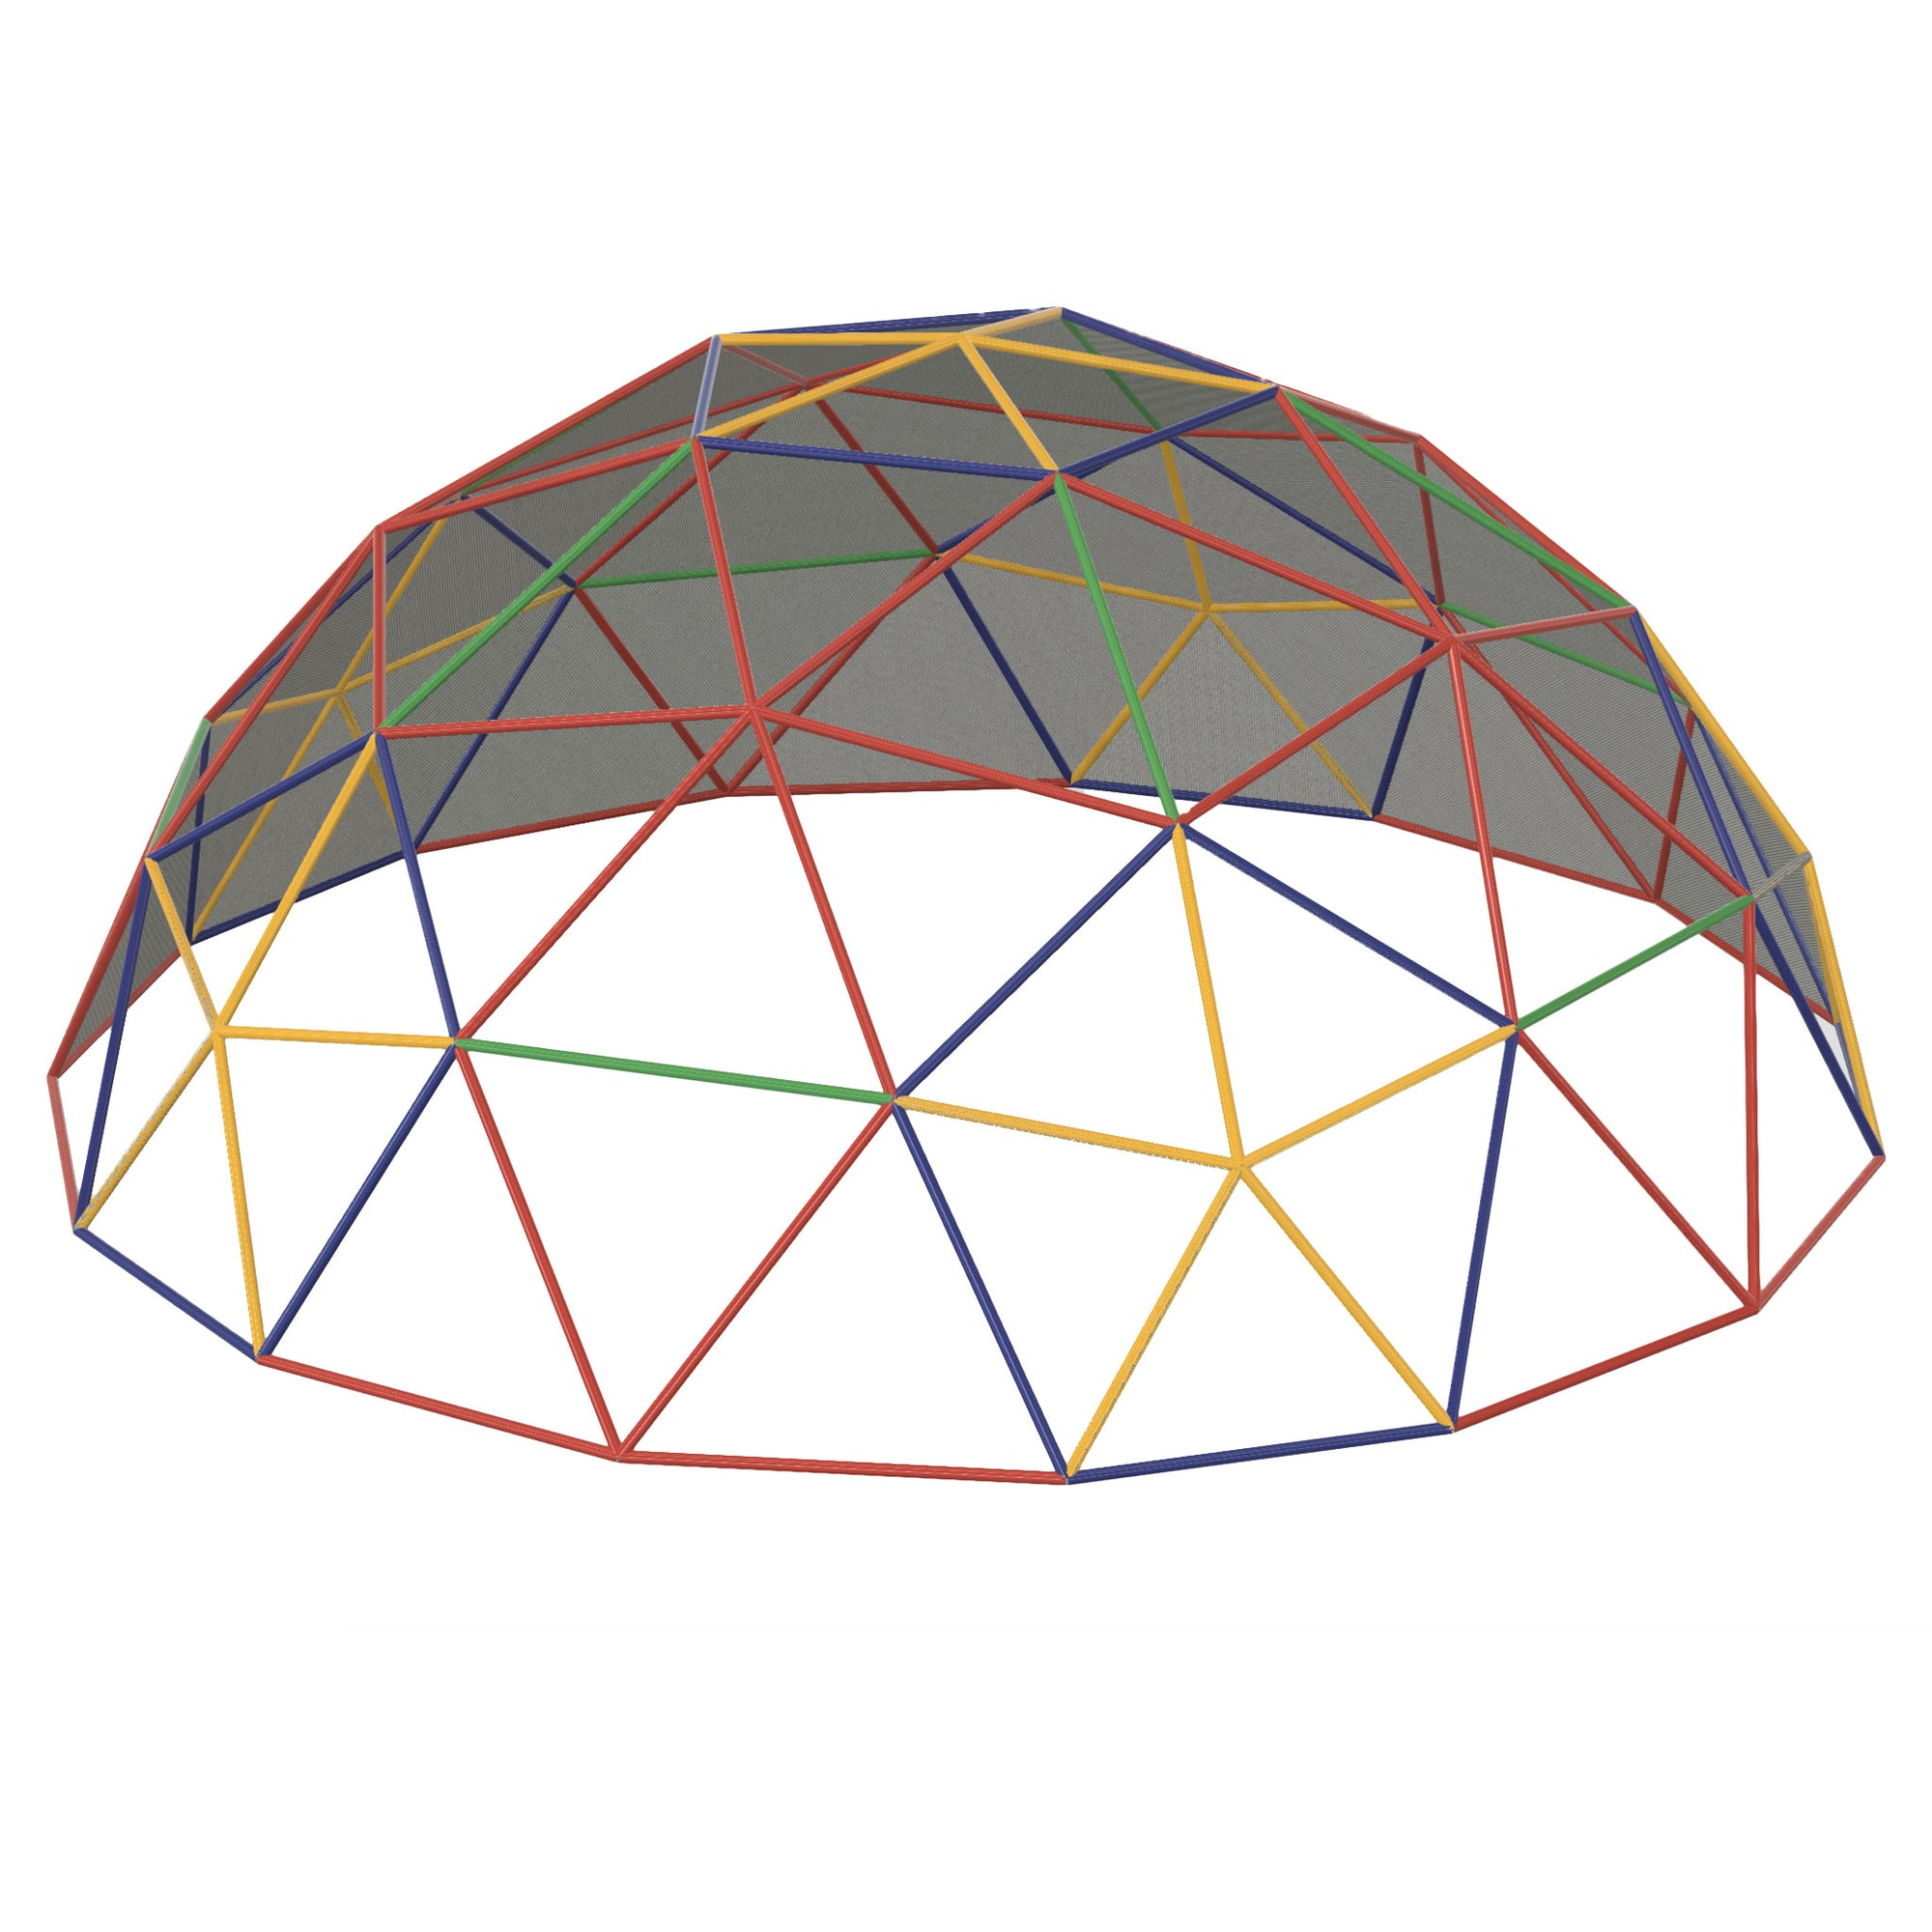 3V 4/9 Mega Dome Kits